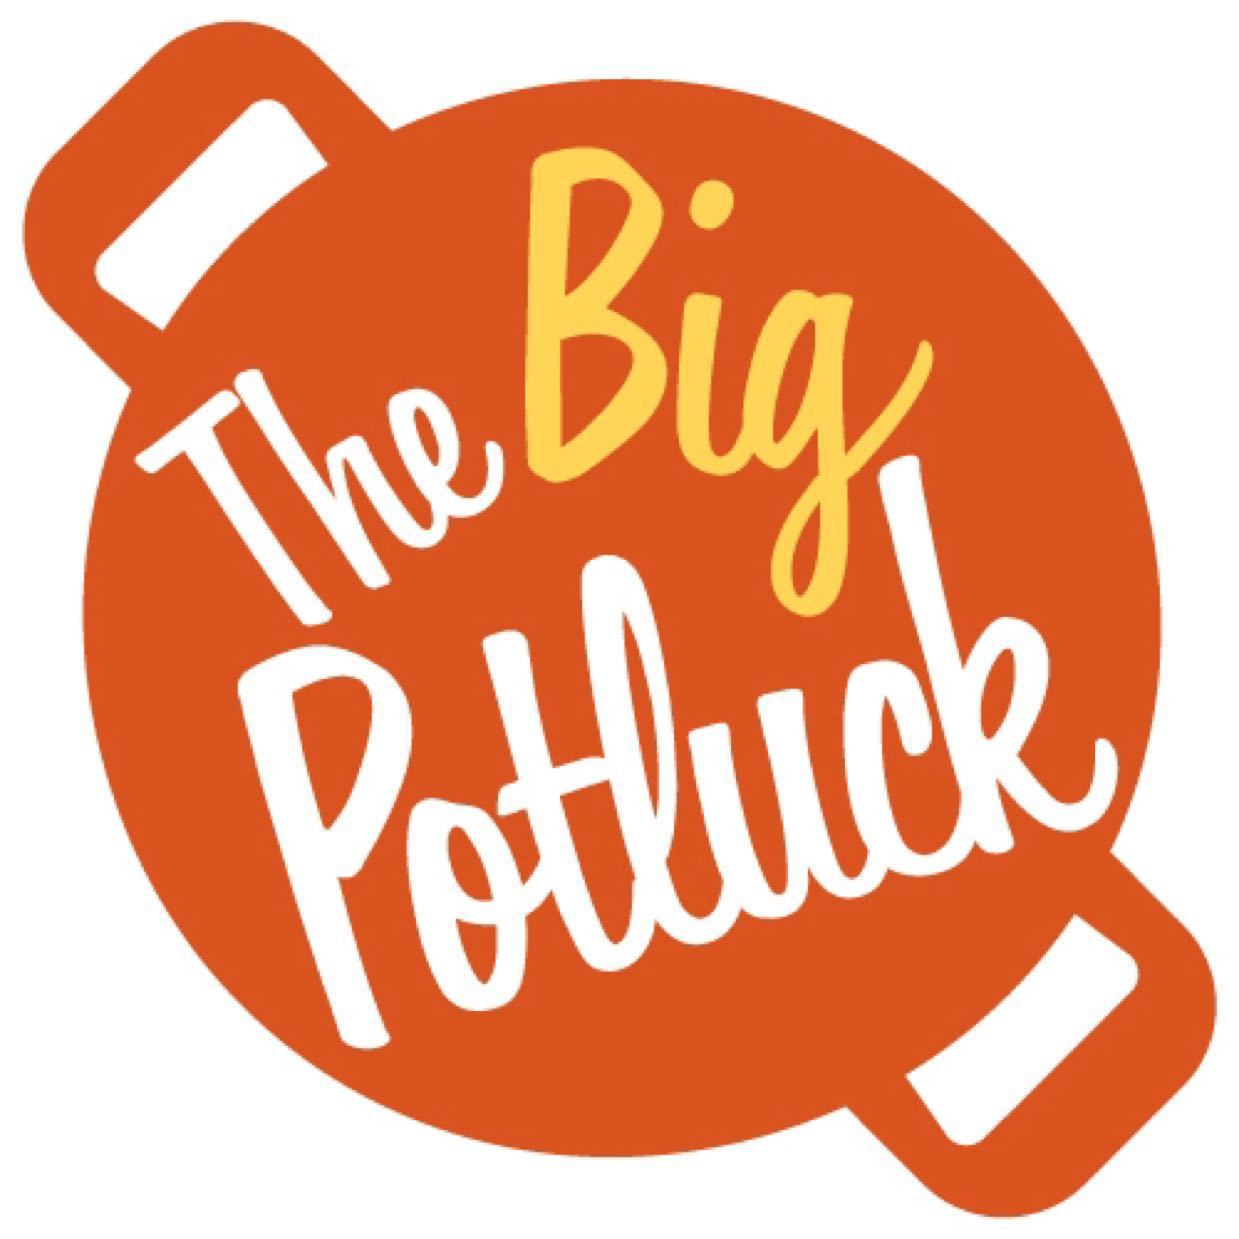 INVITATION: THE BIG POTLUCK!